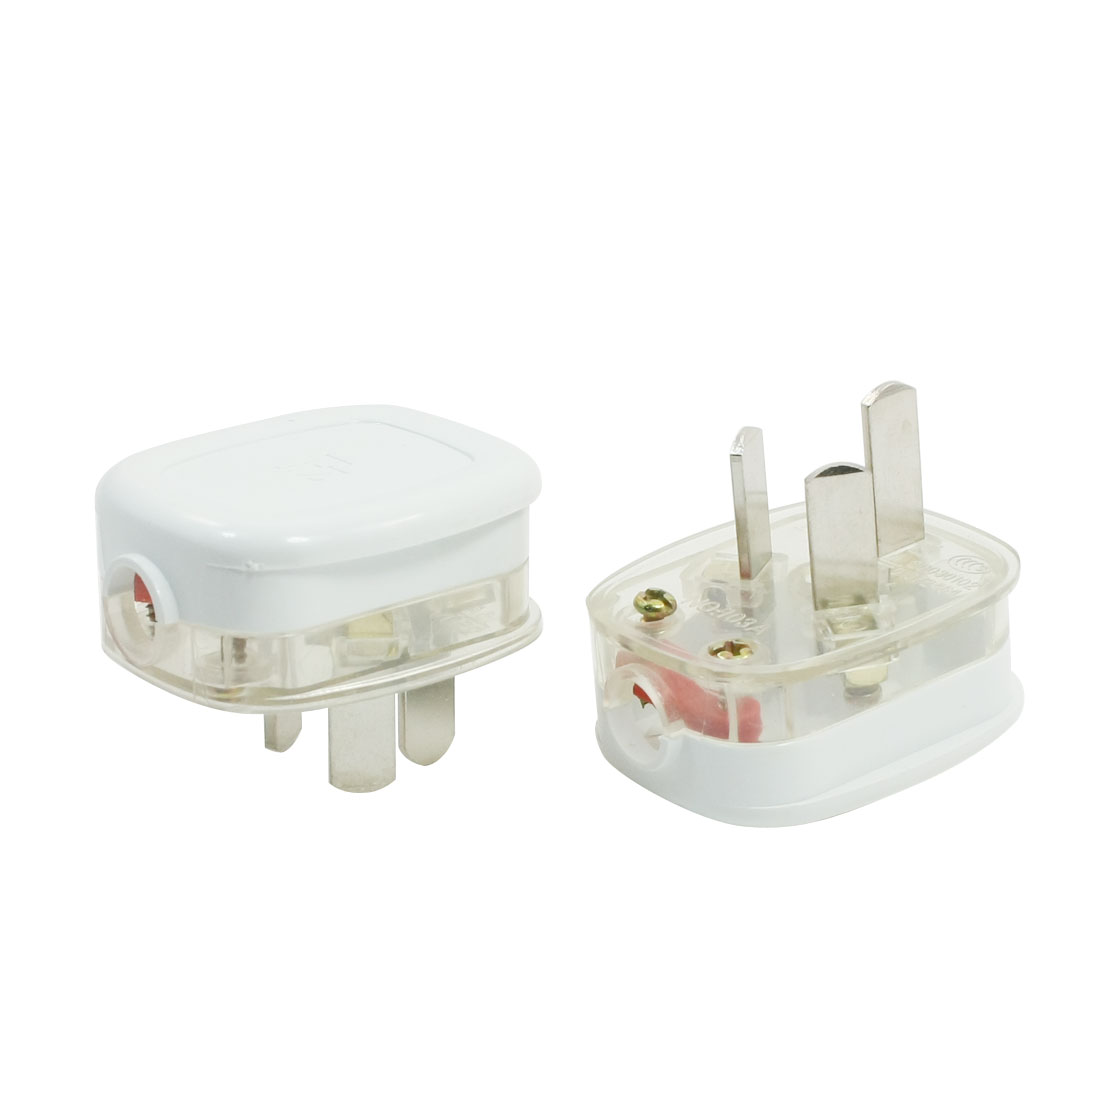 AC 250V 16A AU Plug Plastic Electric Adapter 2pcs for 10mm Cord Cable